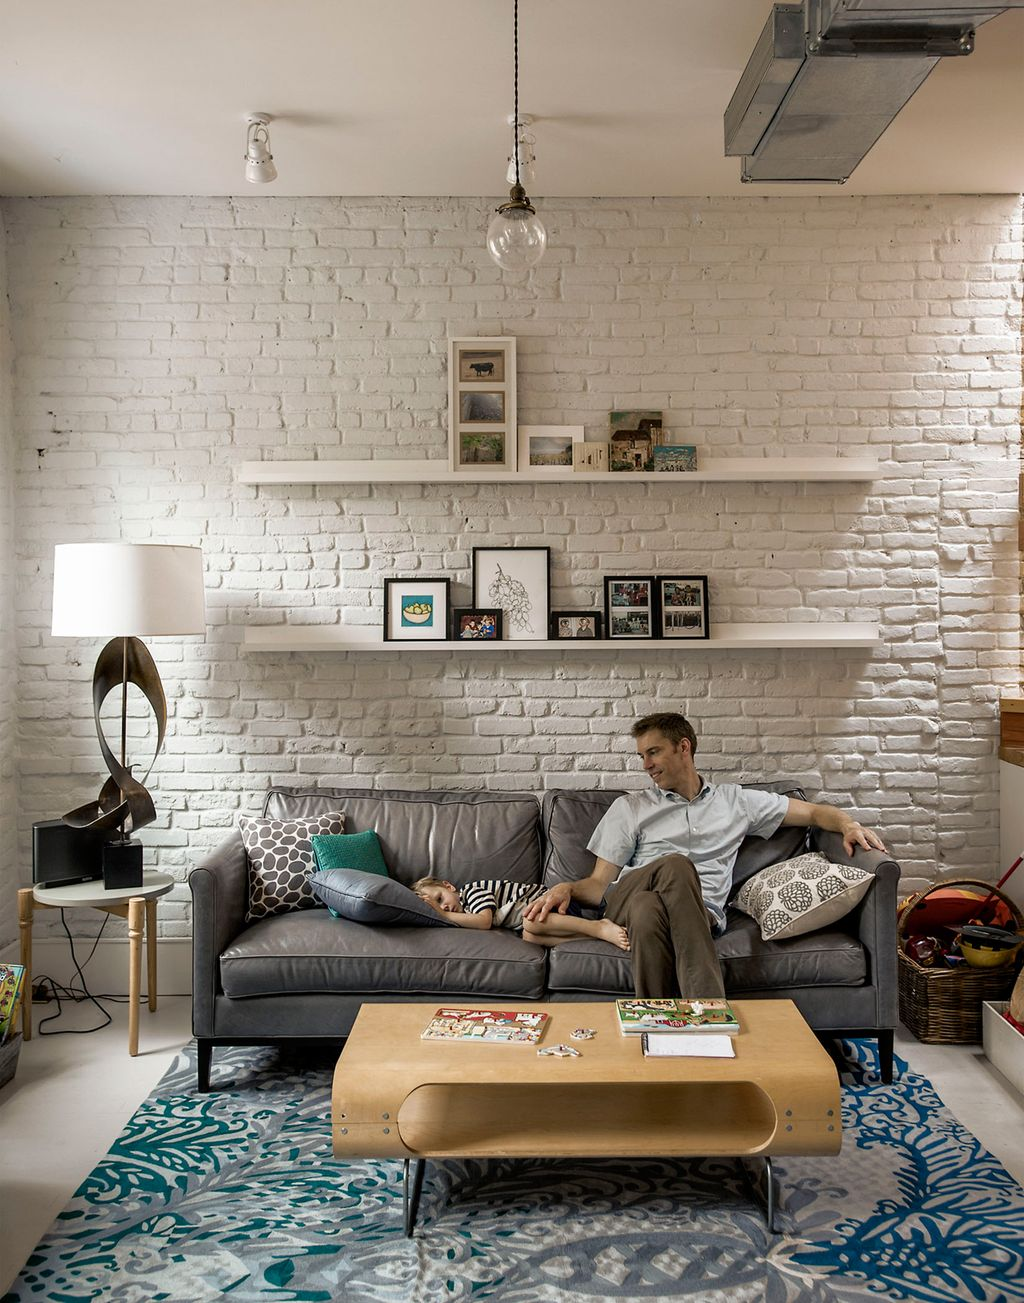 Inspiring And Affordable Decoration Ideas For Small Apartment 04